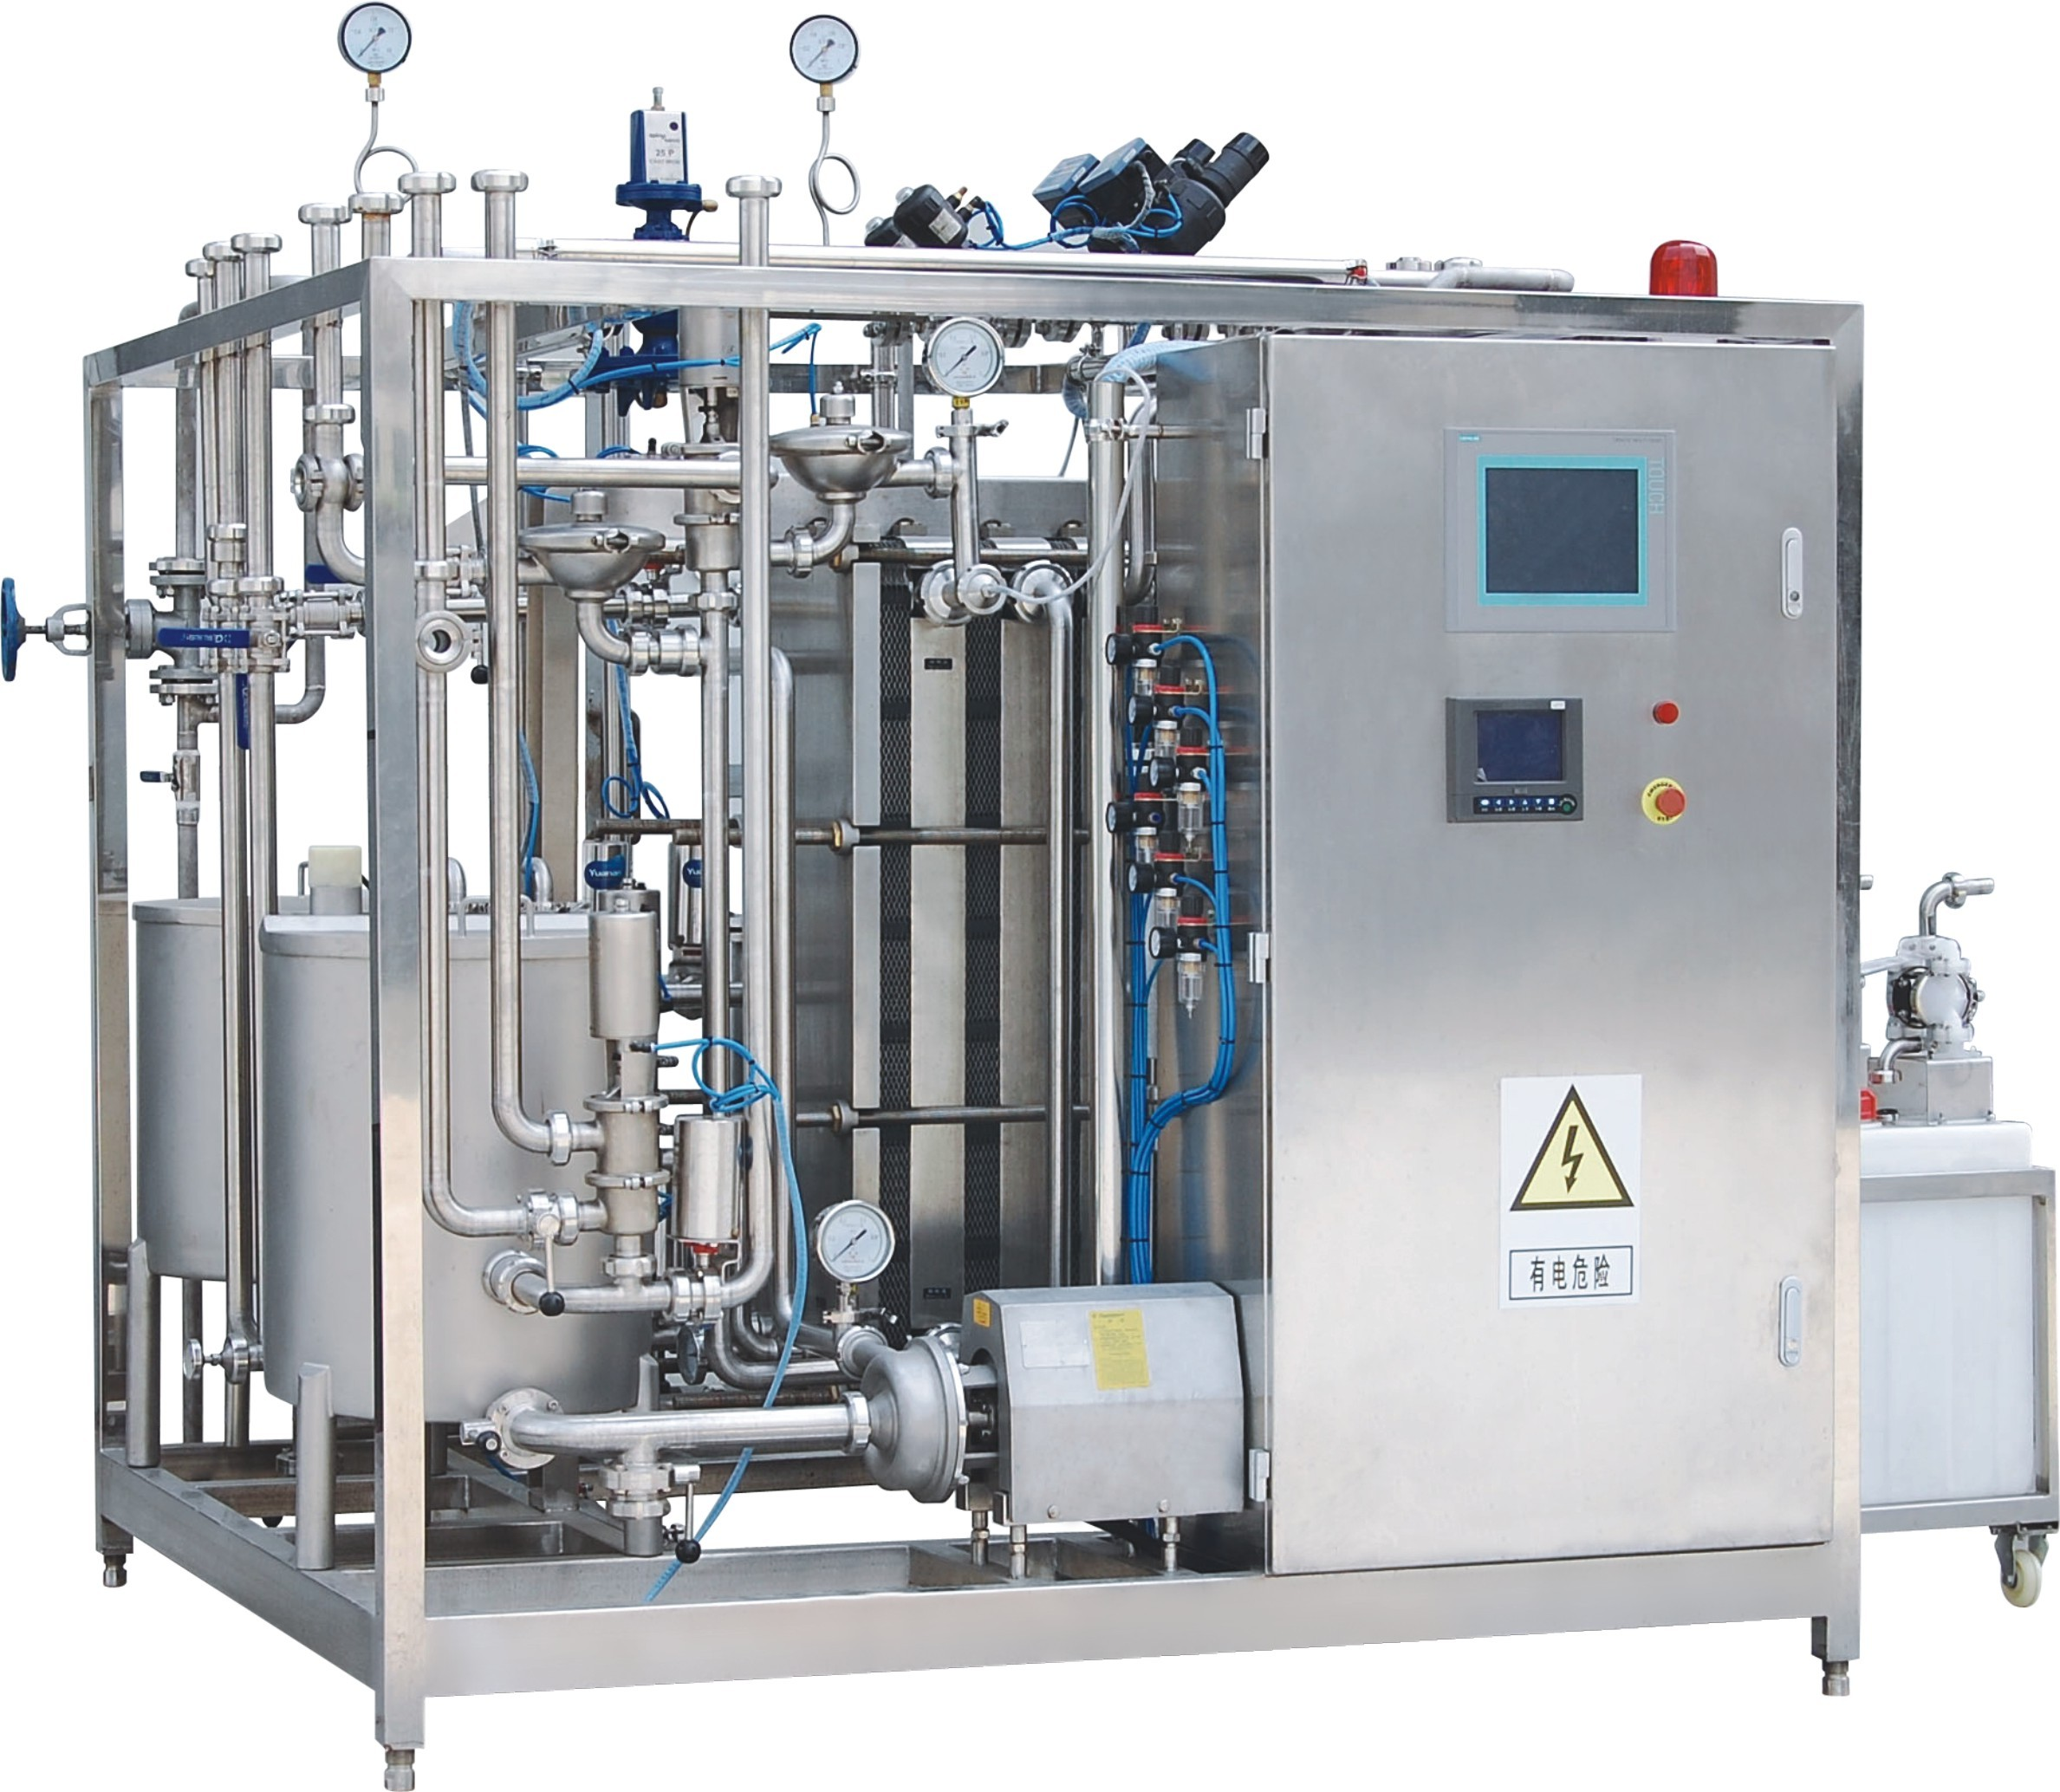 High Heat Treatment SUS 304 Plate Milk Sterilizer Machine / Milk Pasteurization Machine